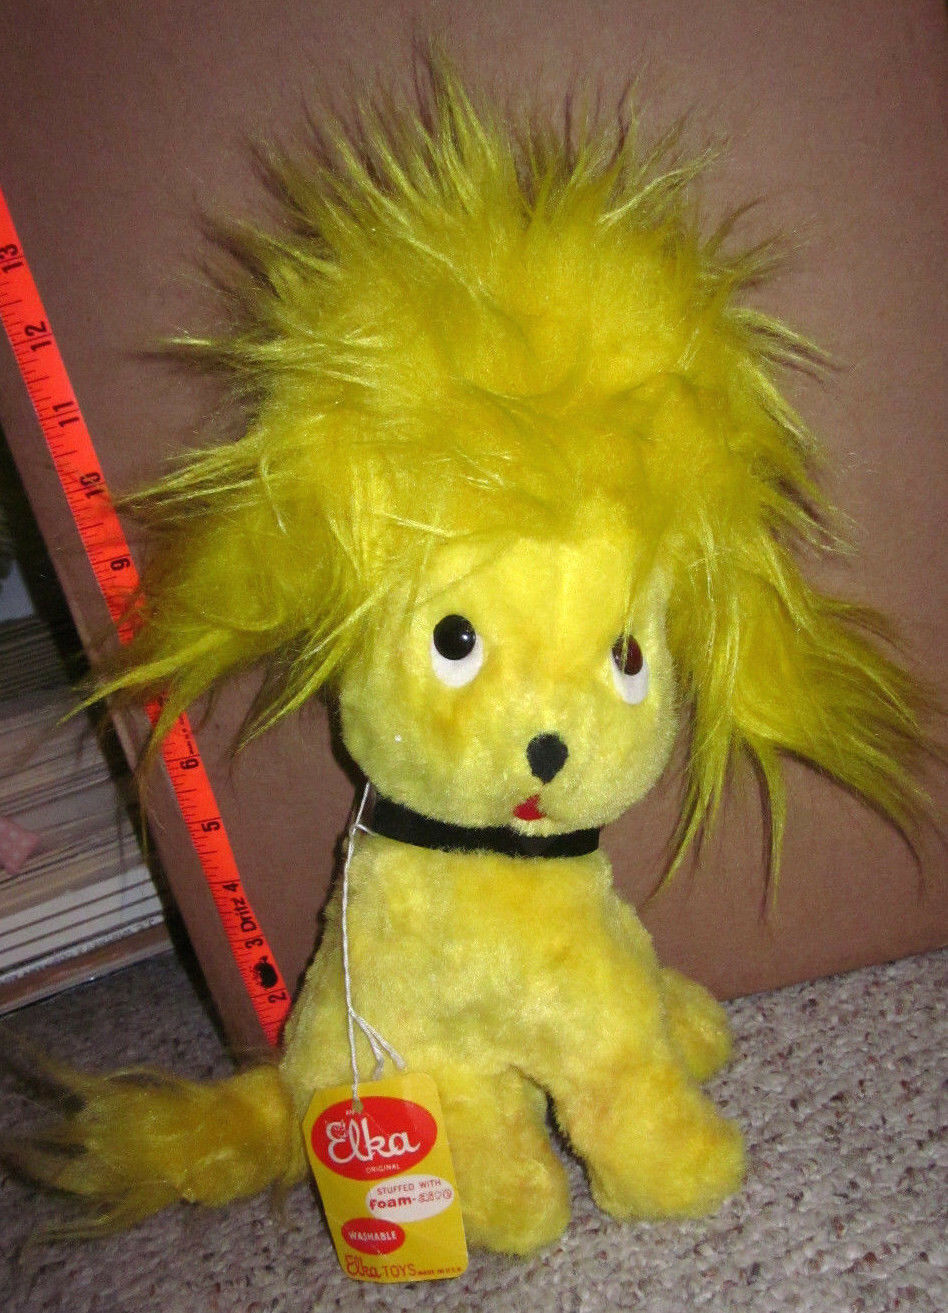 ELKA TOYS vtg Gelb puppy OG doll 1960s w/ tag New York wild stuffed animal